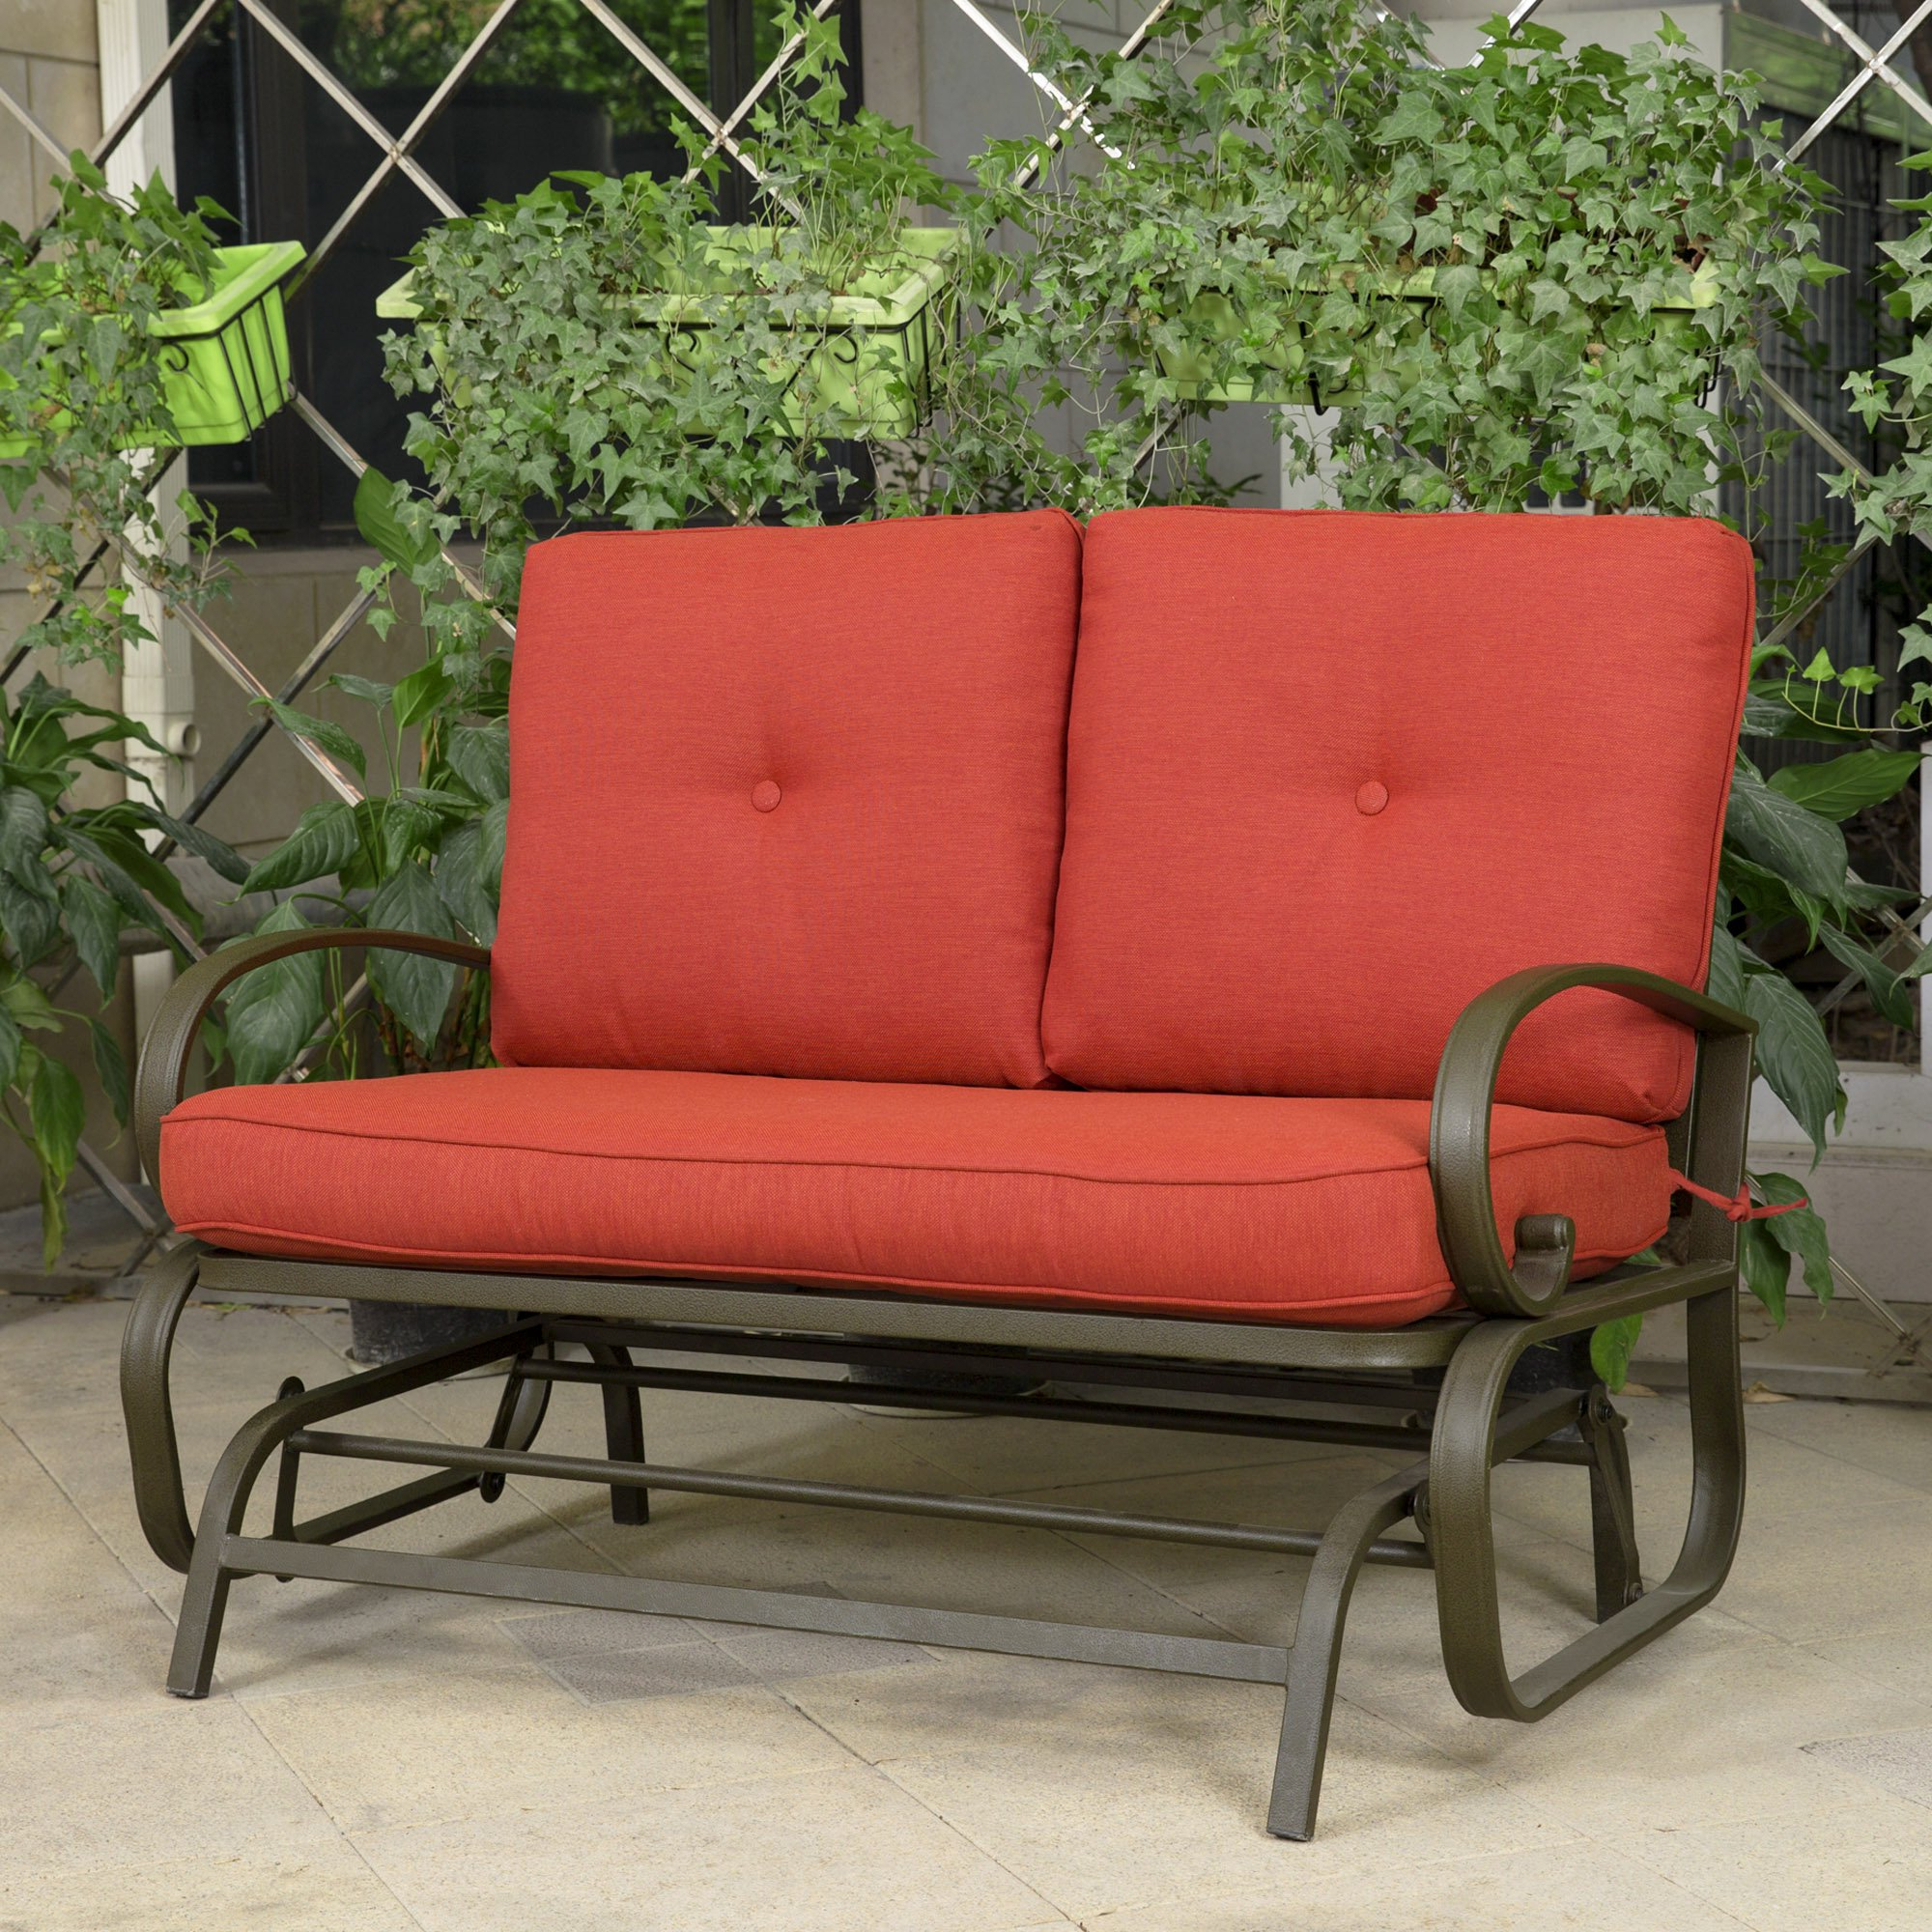 Buy Outdoor Patio Leisure Swing Rocker Glider Bench Loveseat With Most Popular Outdoor Steel Patio Swing Glider Benches (Gallery 29 of 30)